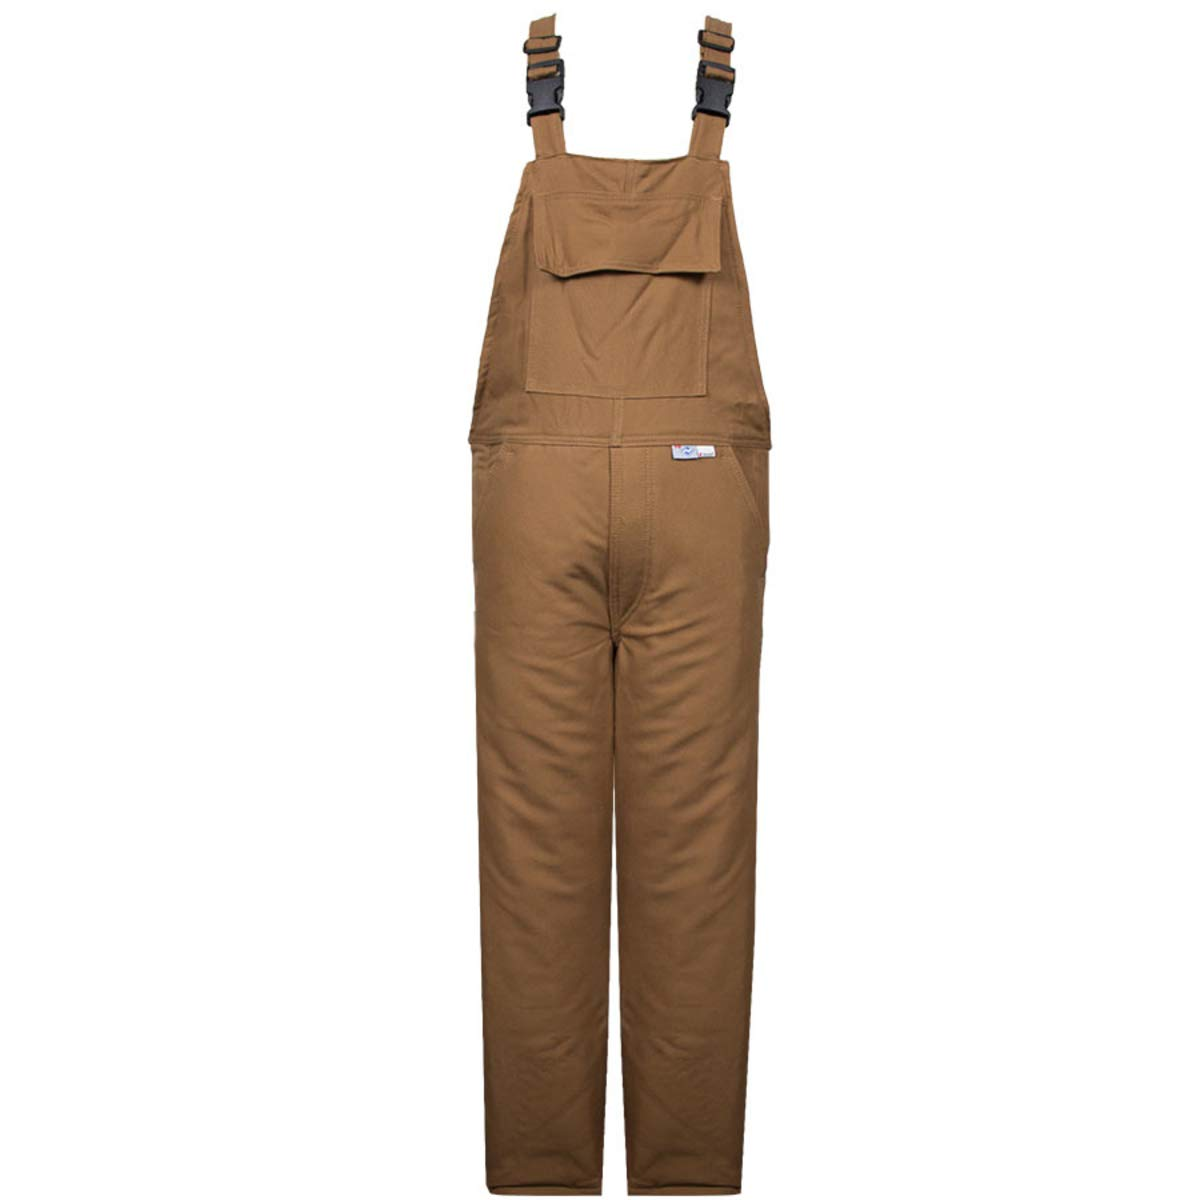 National Safety Apparel Medium Brown UltraSoft Duck 60 cal/cm Flame Resistant Bib Overall 3M Thinsulate Lining With Zipper Closure